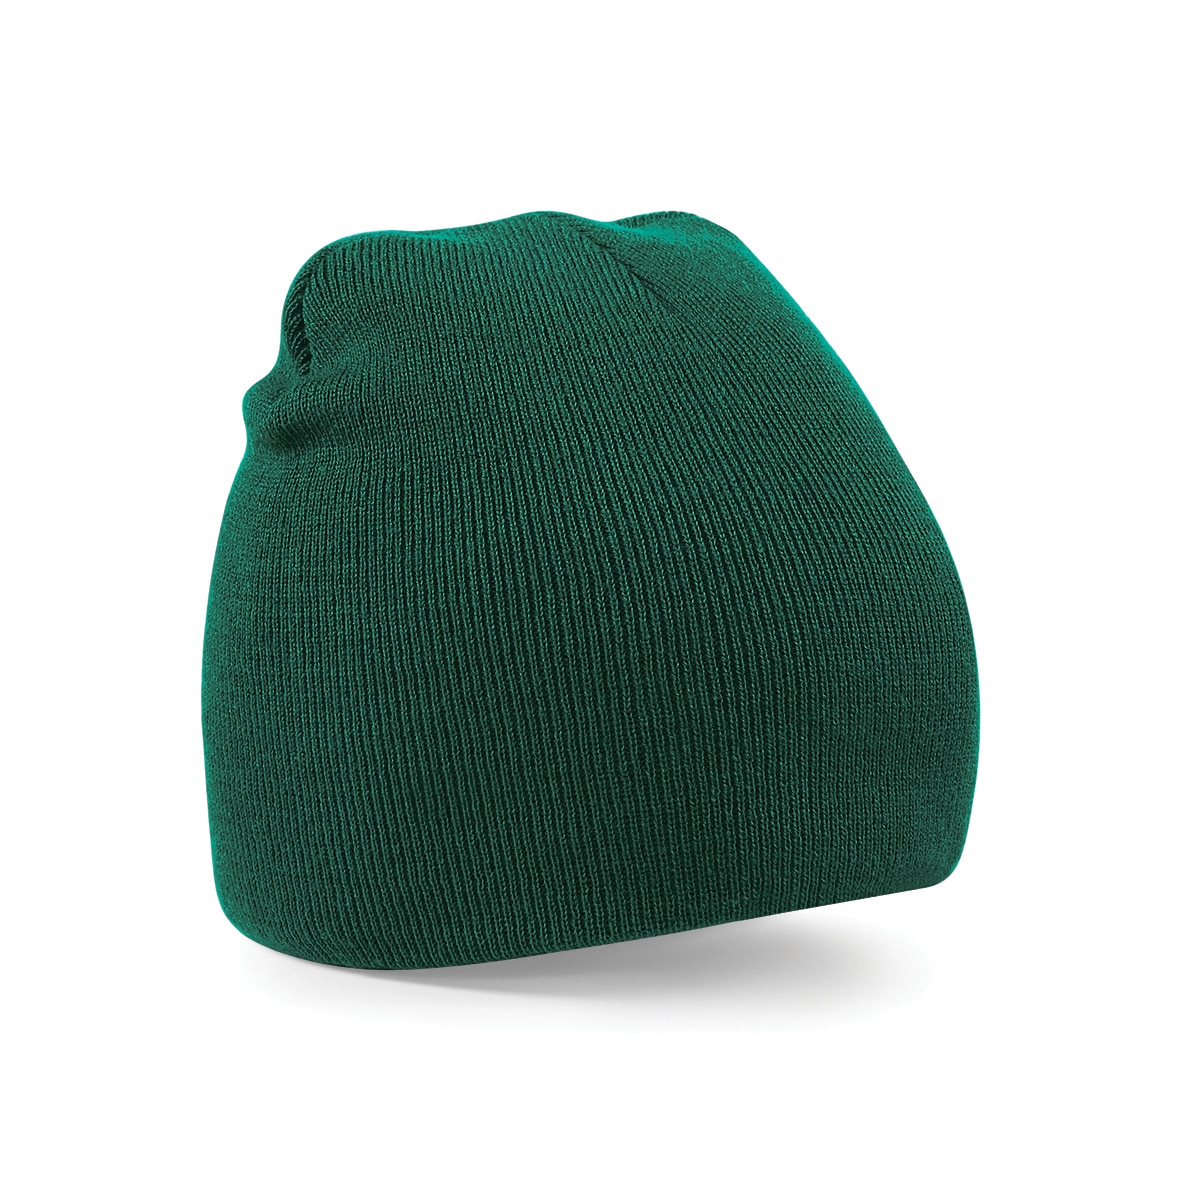 Bottle Green Embroidered Personalised Beanies from Jageto Embroidery and Print in Essex, UK